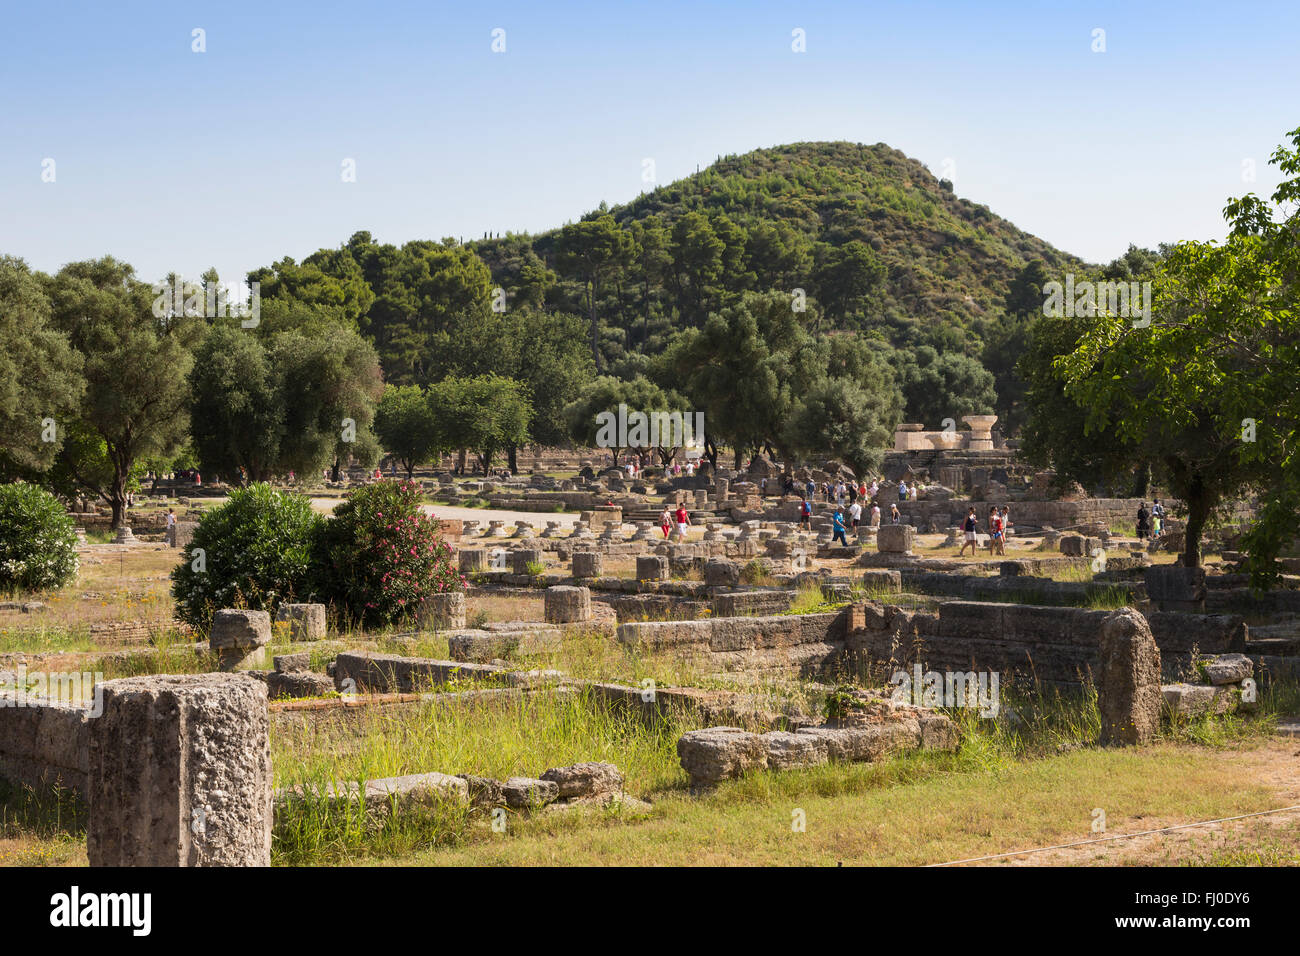 Olympia, Peloponnese, Greece.  Ancient Olympia.  Groups of visitors strolling through the ruins. - Stock Image